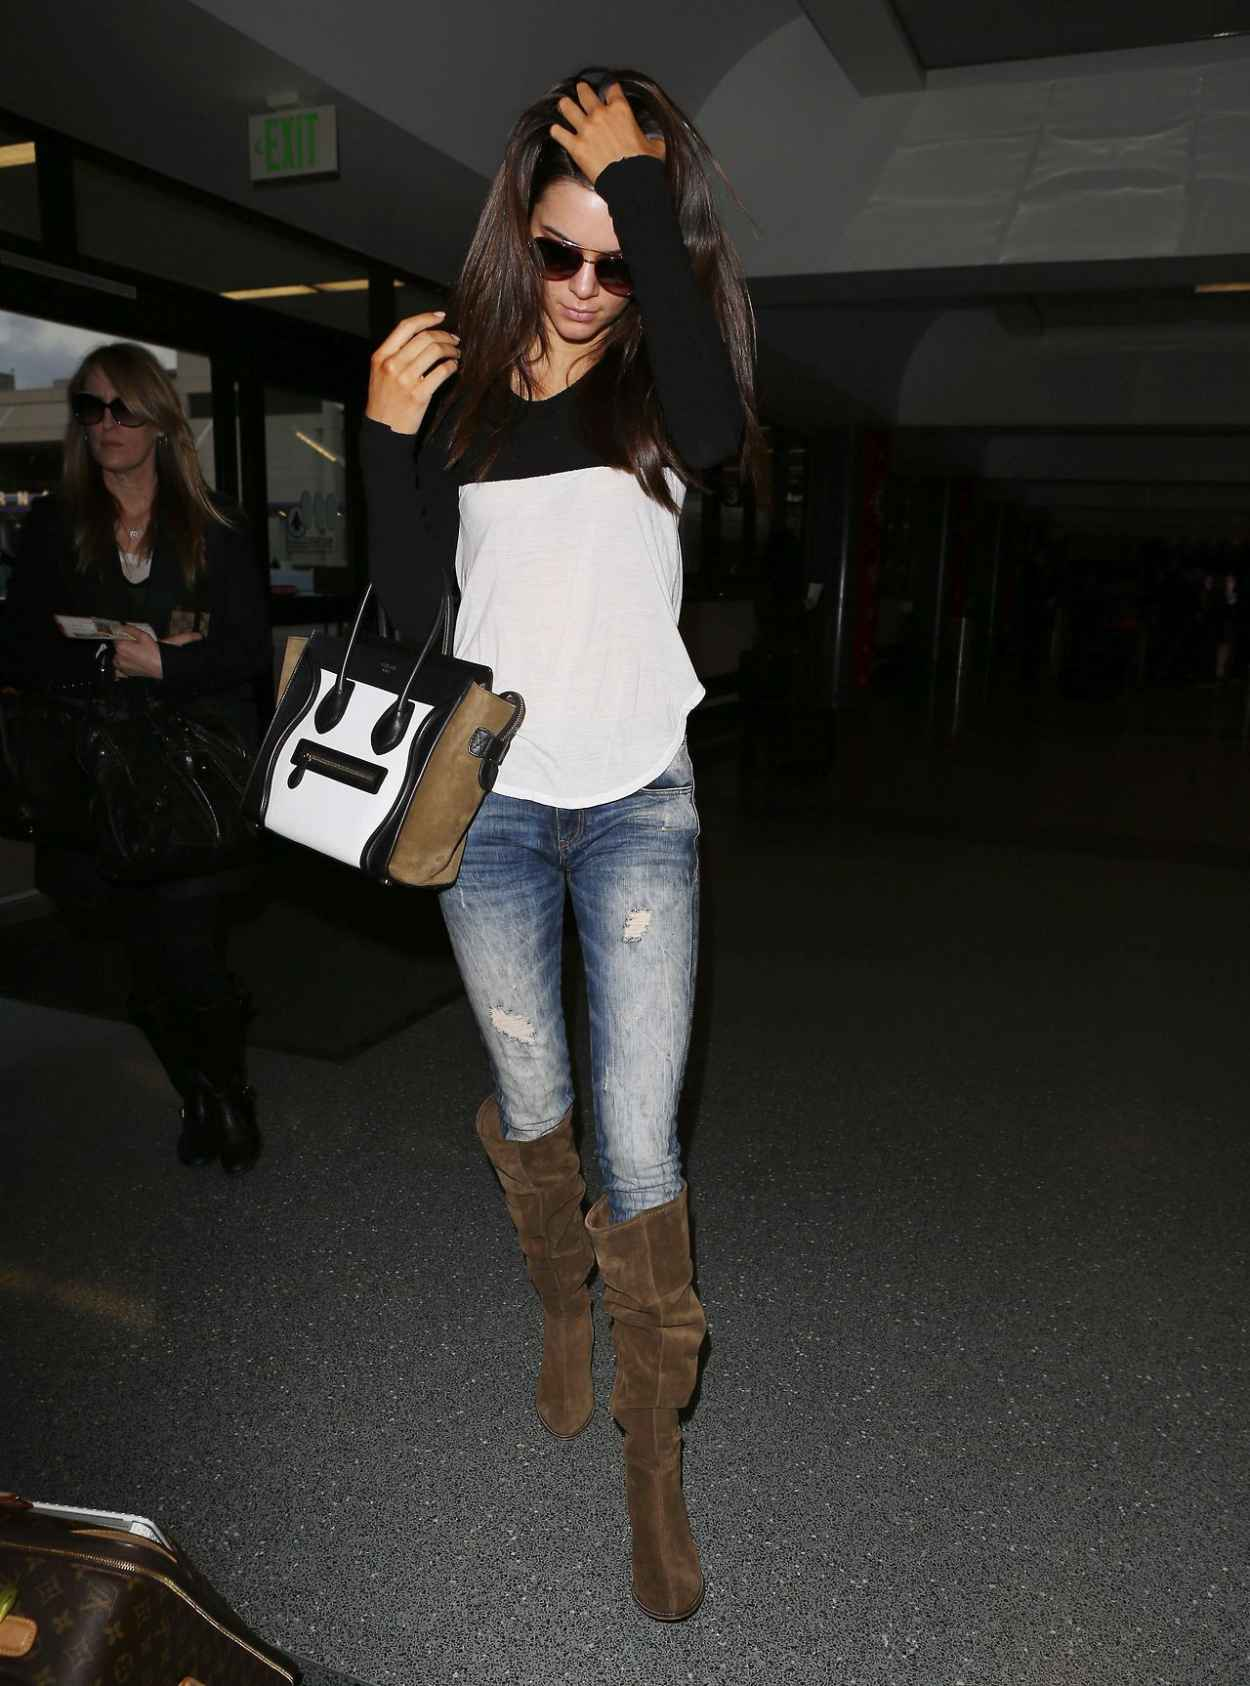 Kendall Jenner in Jeans at LAX Airport - November 2015-3